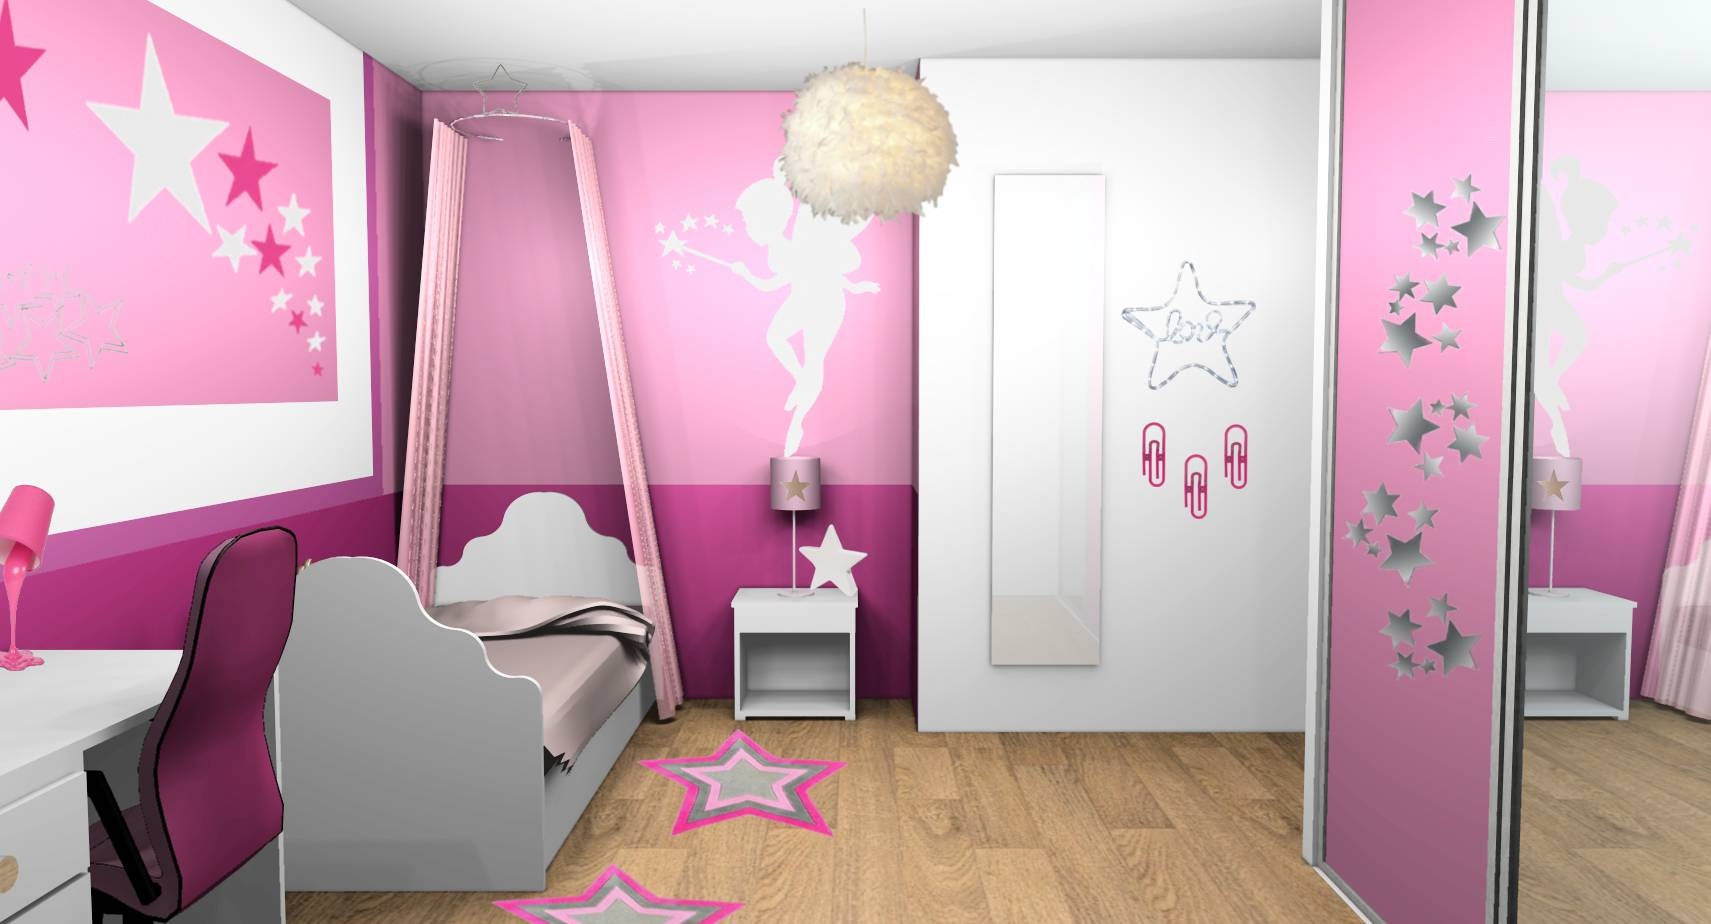 d coration d 39 int rieur d 39 une chambre de petite fille vaux le p nil 77 designement v tre. Black Bedroom Furniture Sets. Home Design Ideas